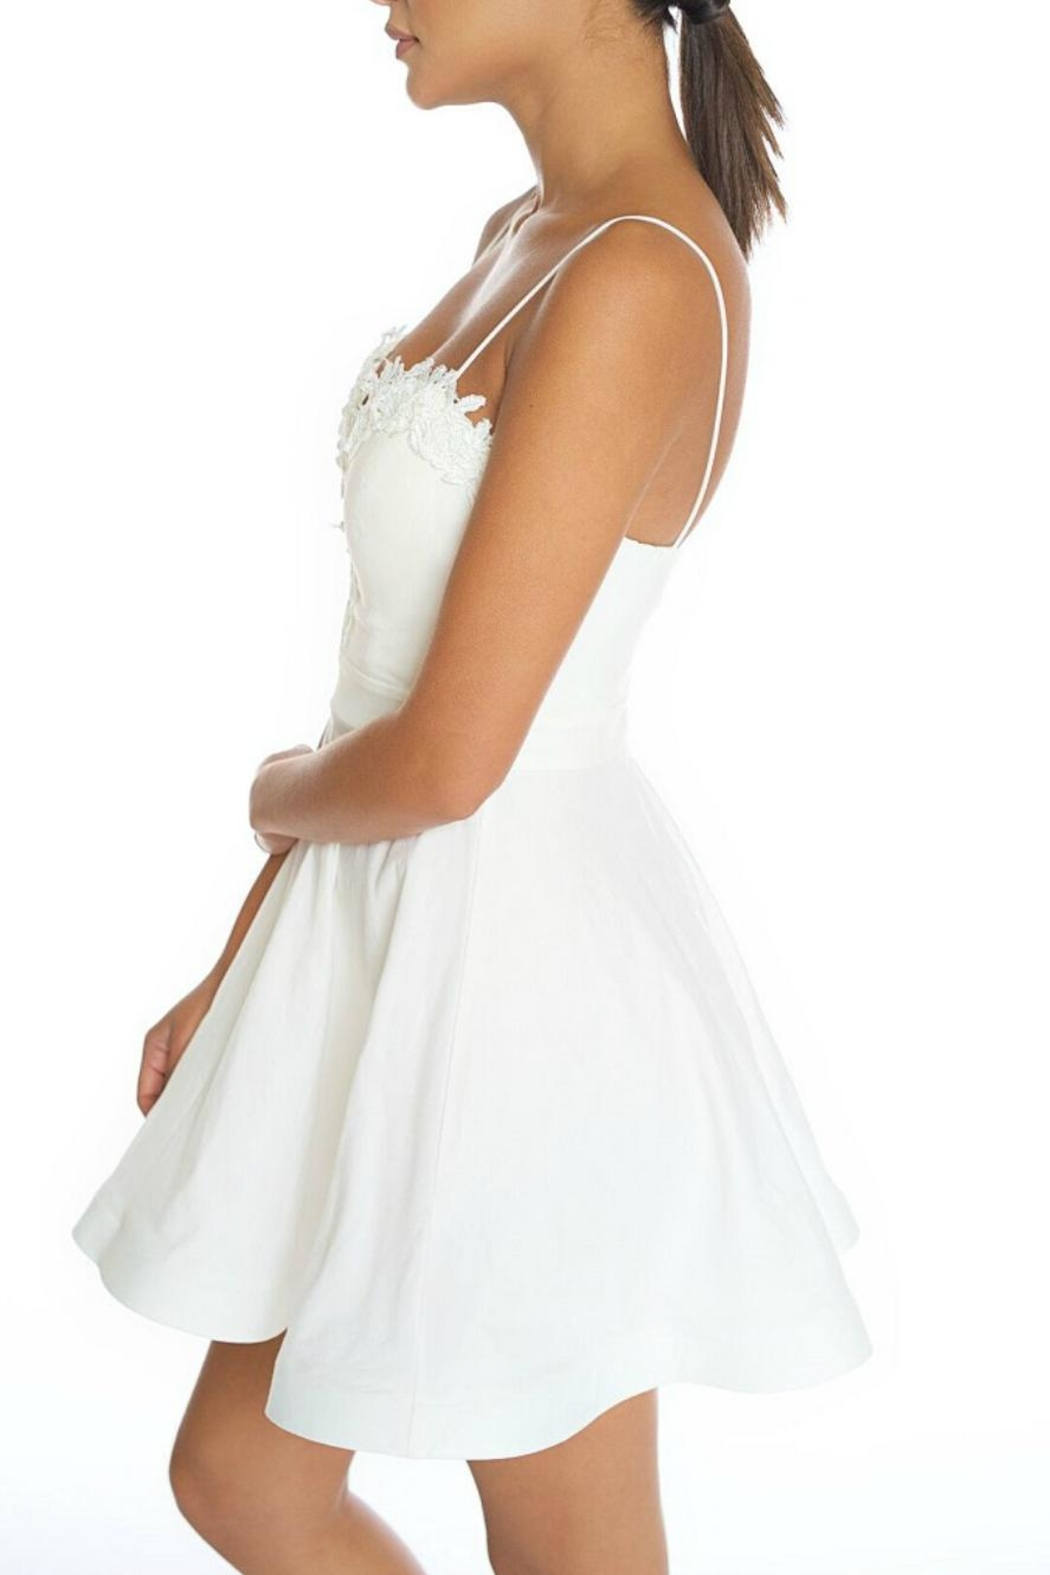 luxxel Sweetheart White Dress - Front Full Image